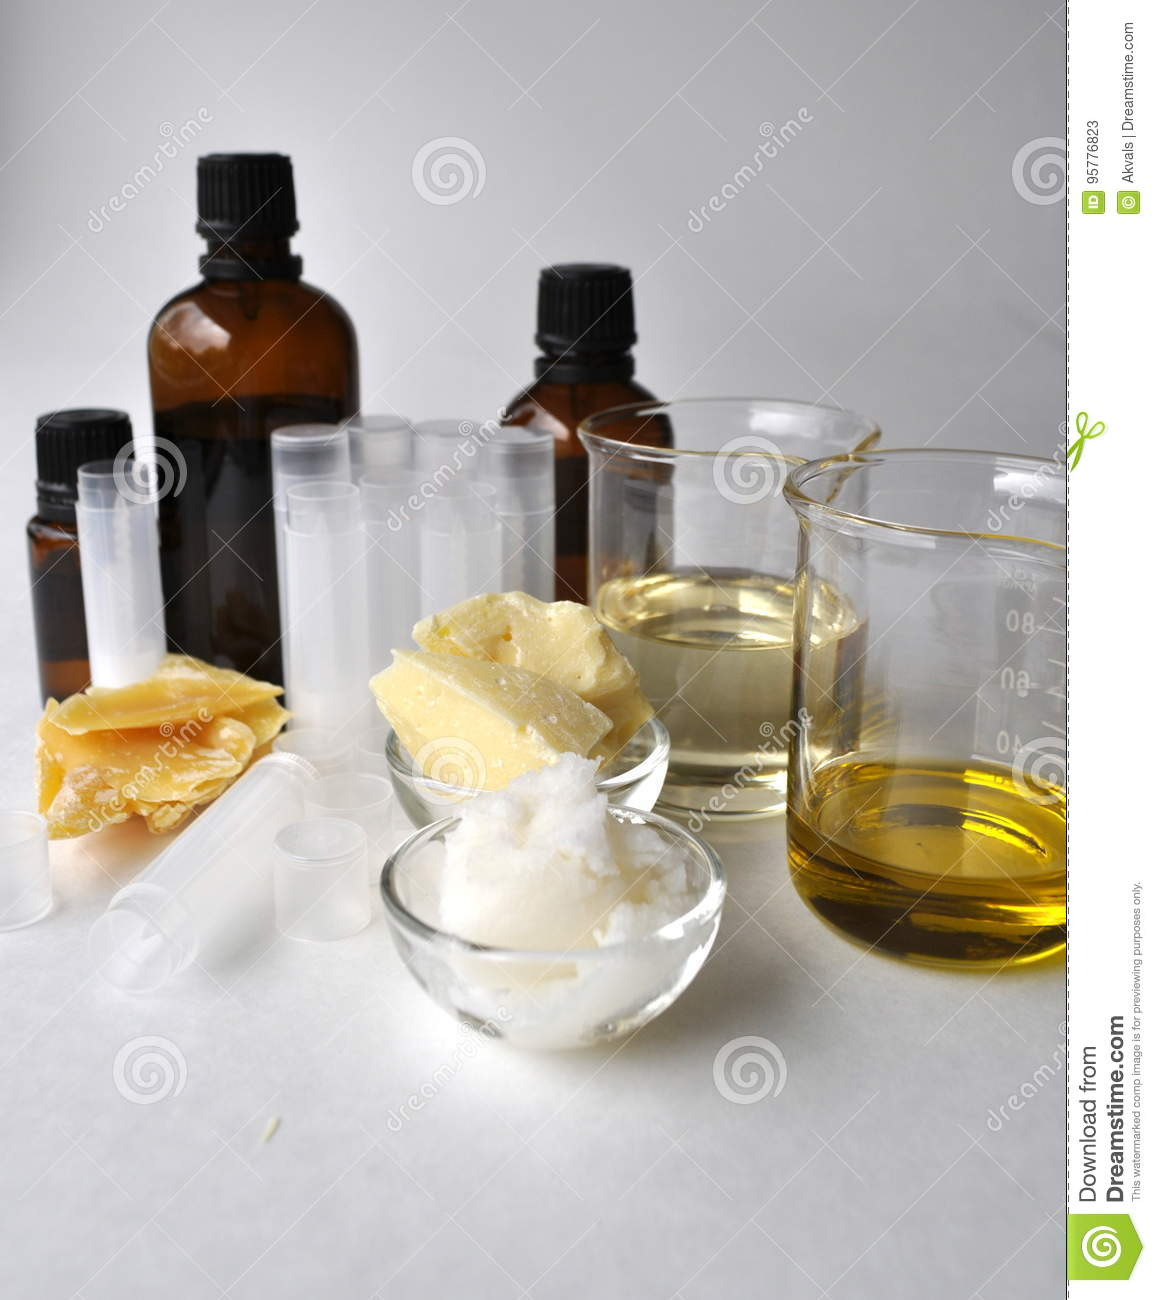 Ingredients for making natural cosmetics cacao butter, coconut, almond, jojoba and essential oils with tubes and bottles